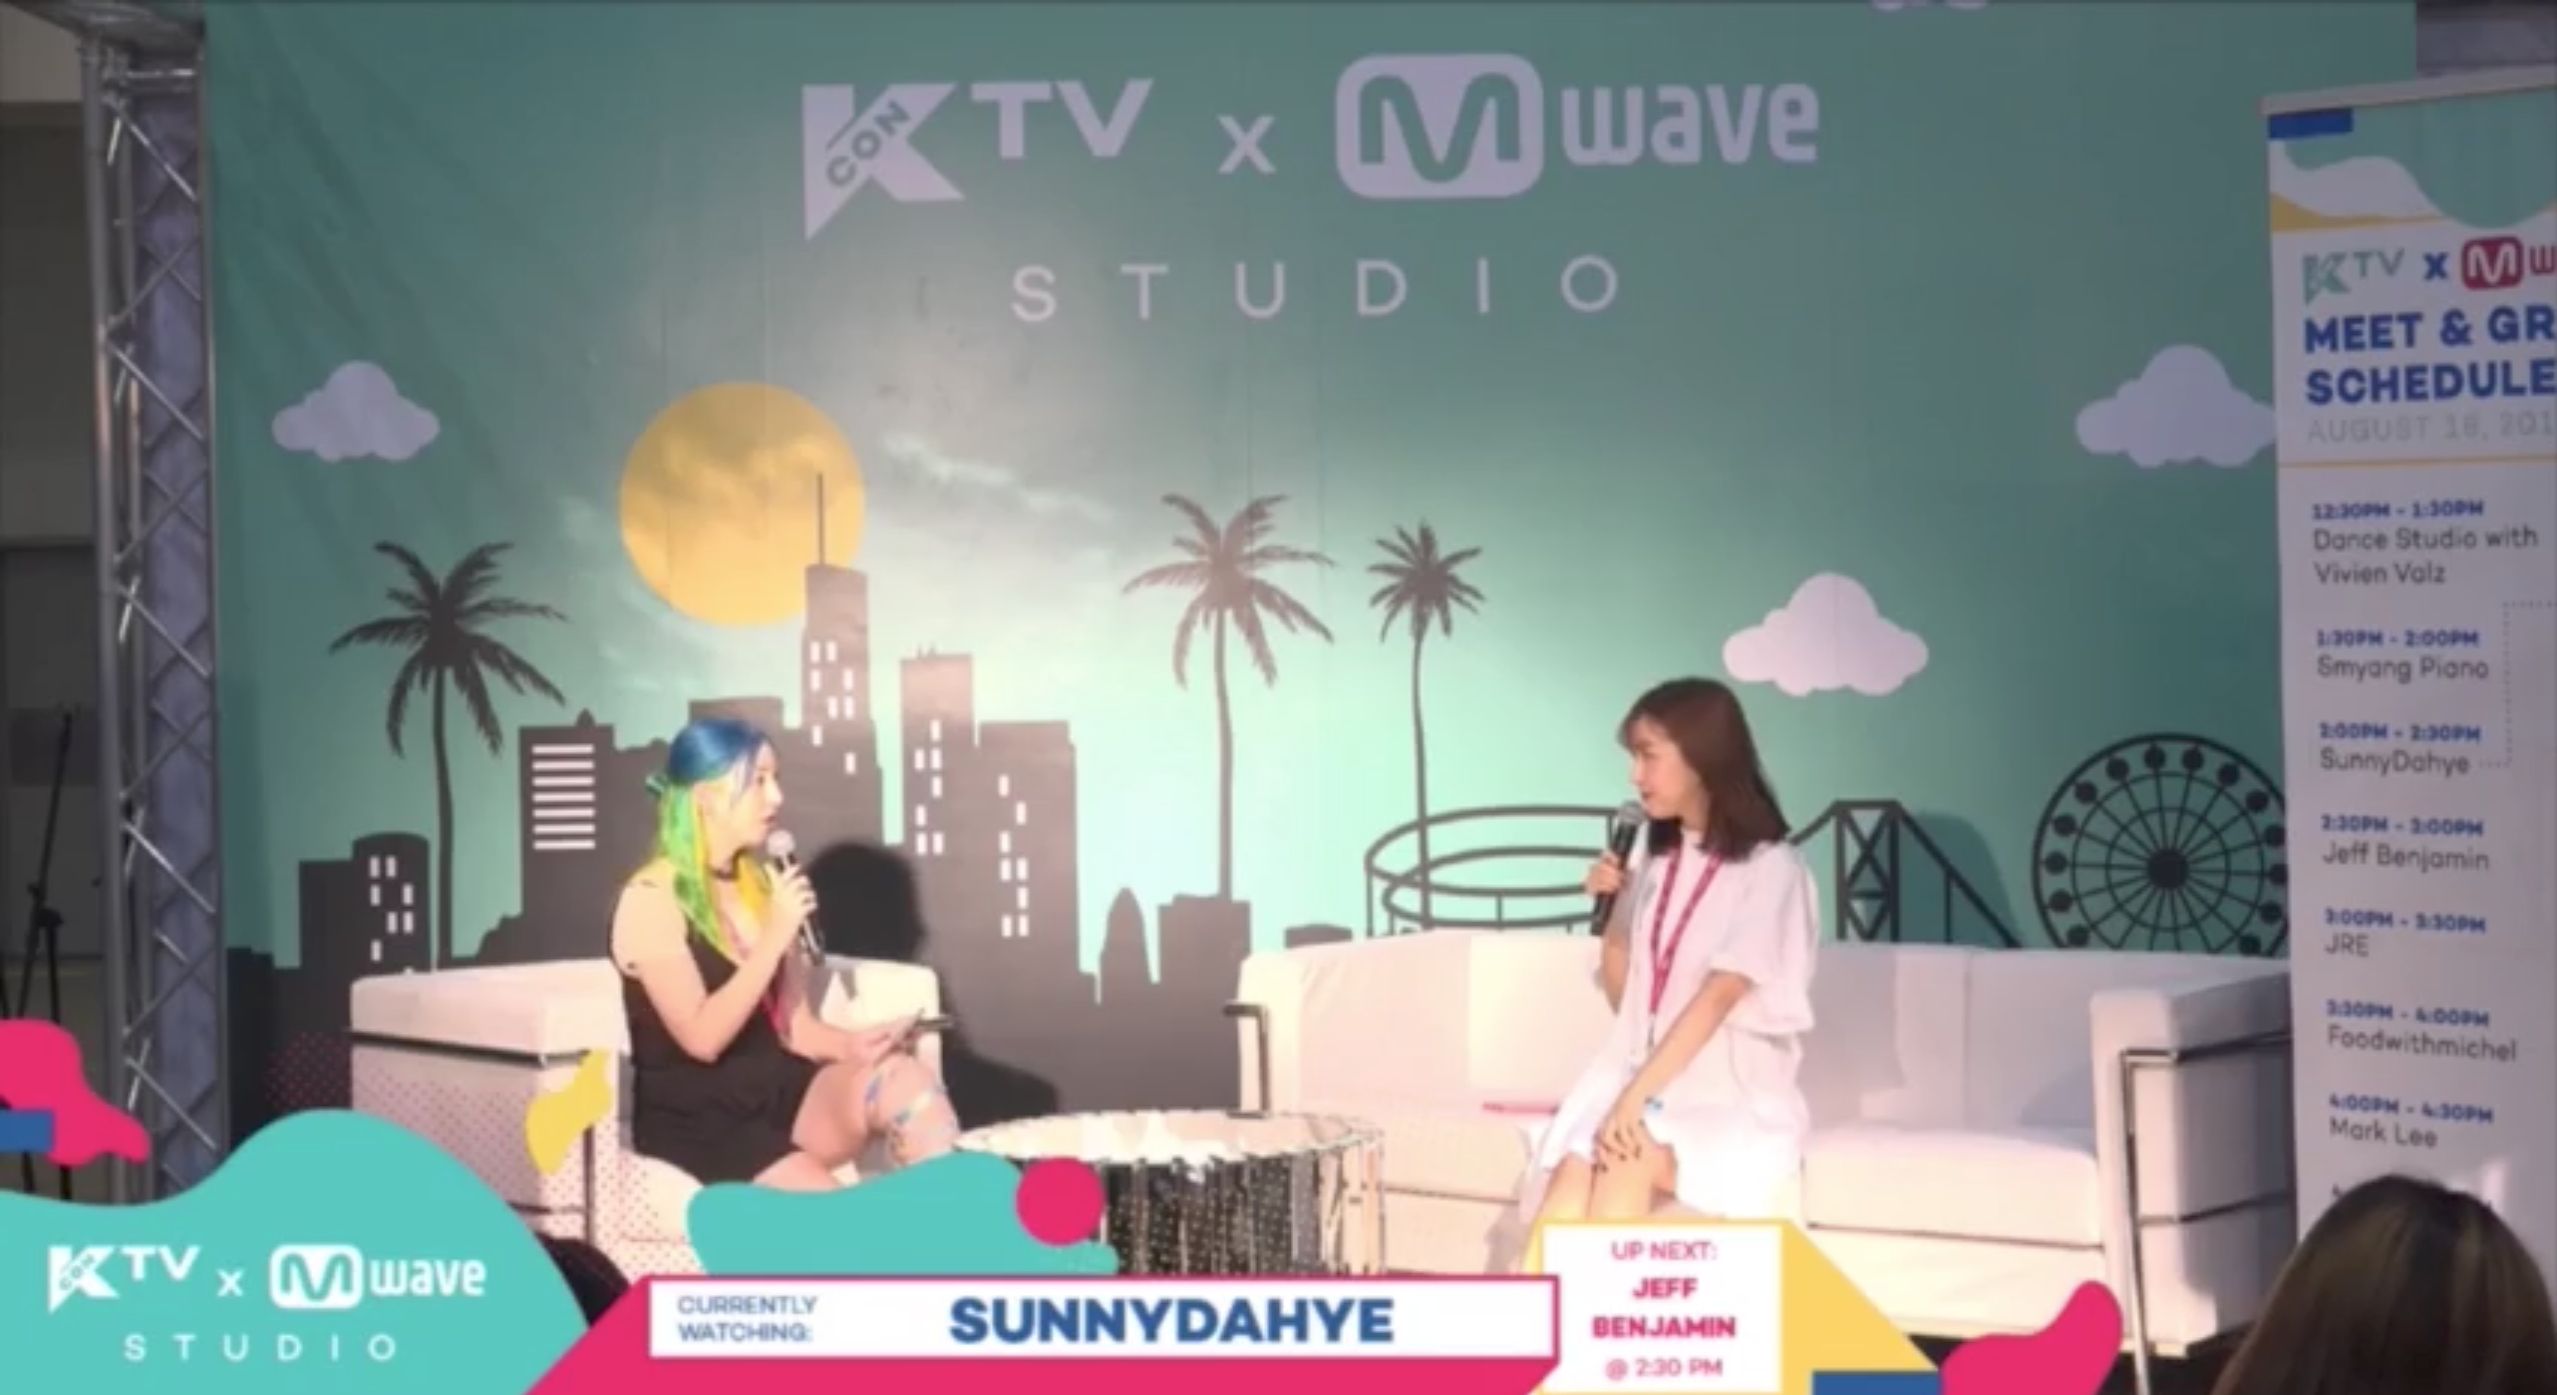 [#KCON17LA] SunnyDahye Wants Zico To Do Her Makeup? + Advice on Plastic Surgery and Juggling Her New Job and YouTube